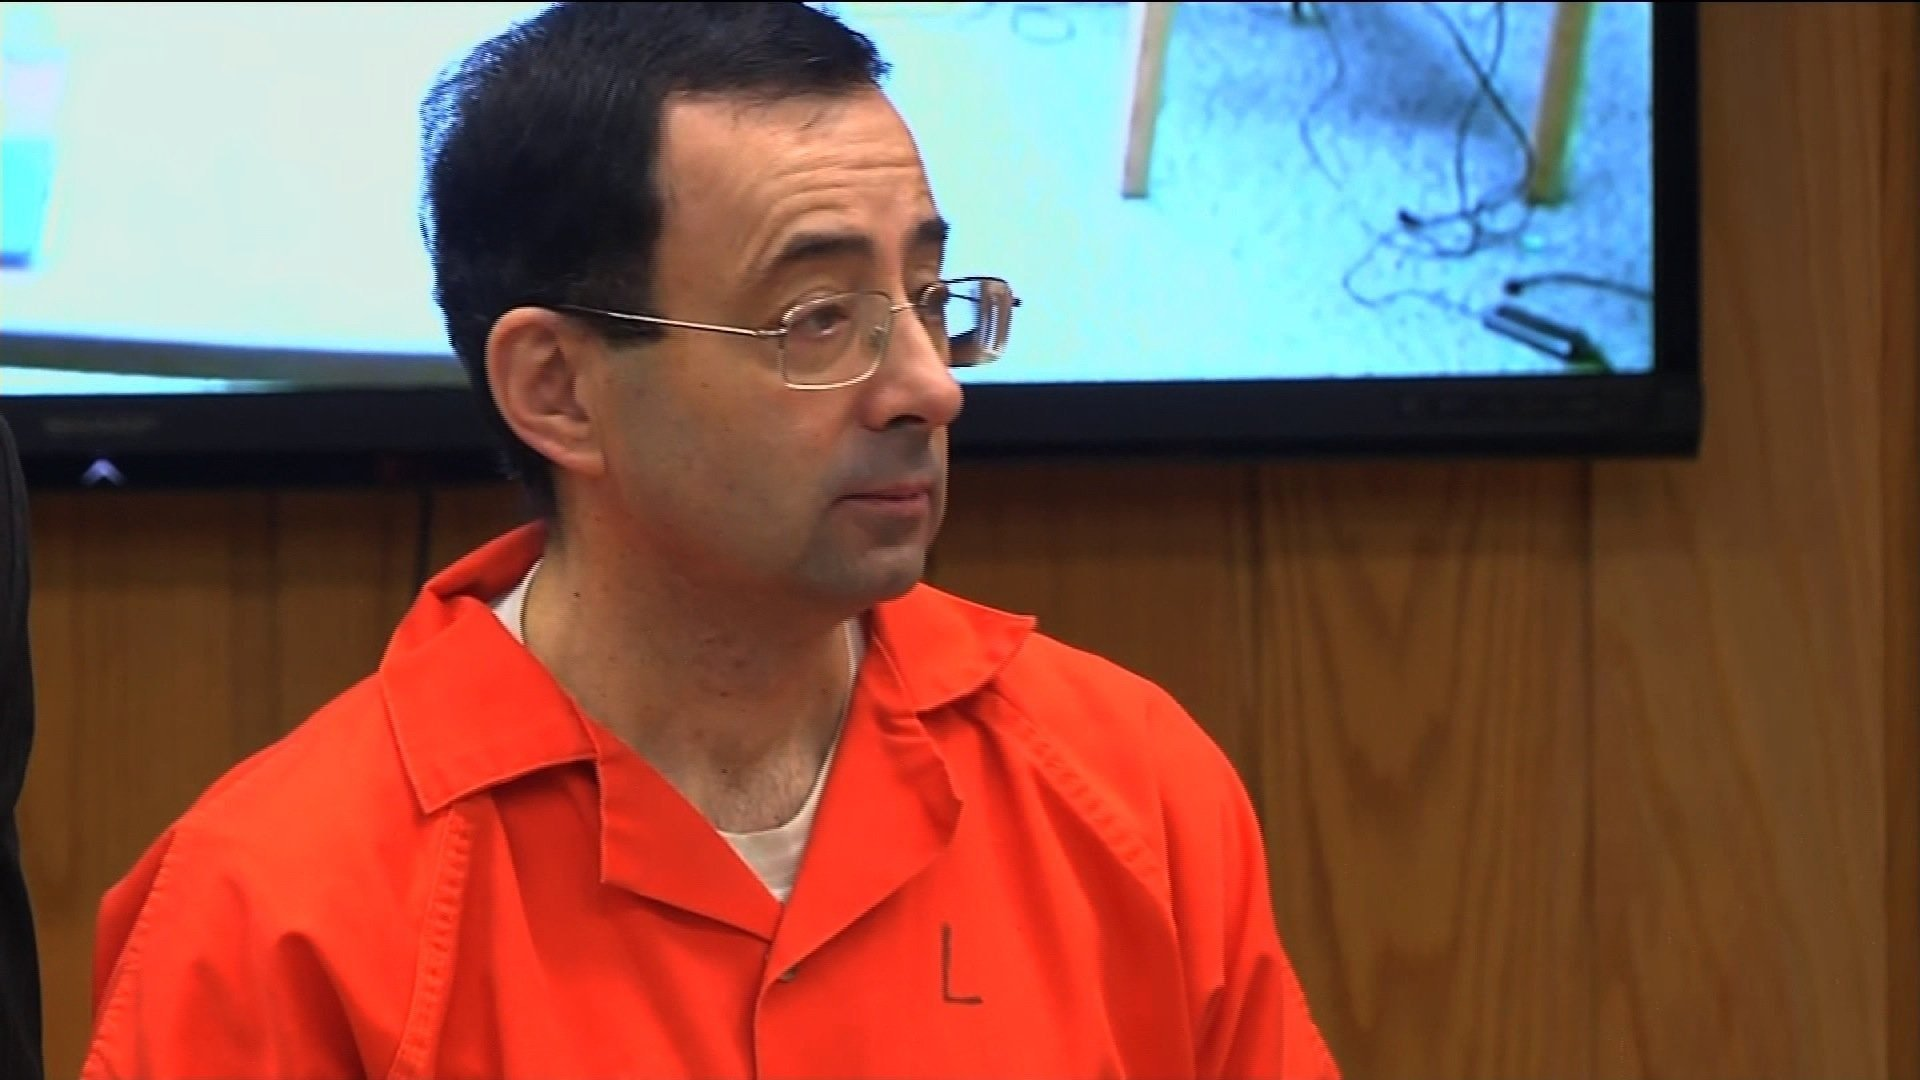 First male athlete sues Larry Nassar over alleged sexual abuse